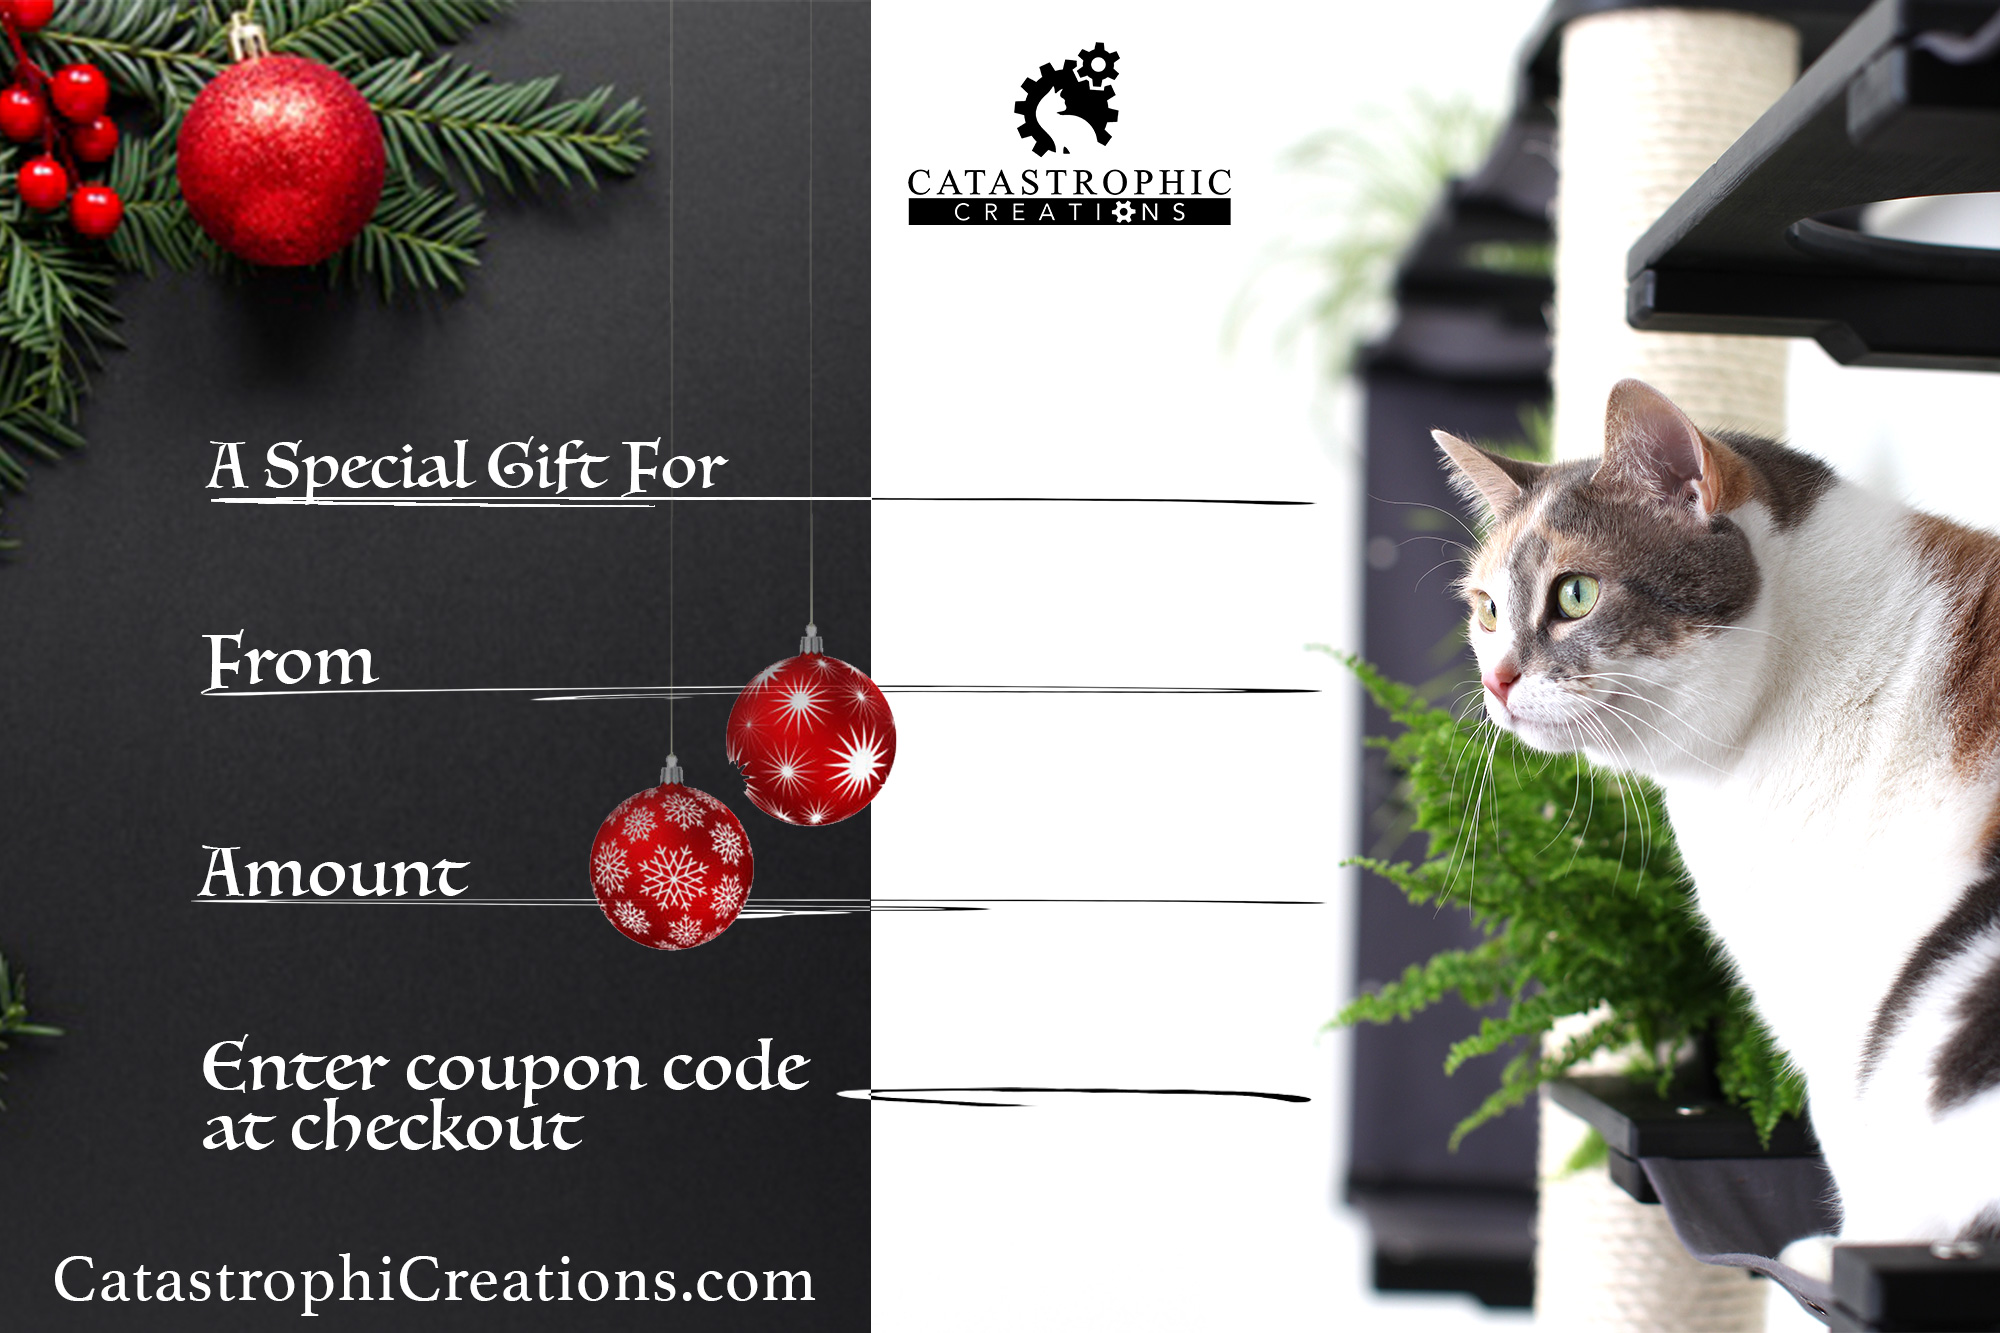 catastrophic creations gift card